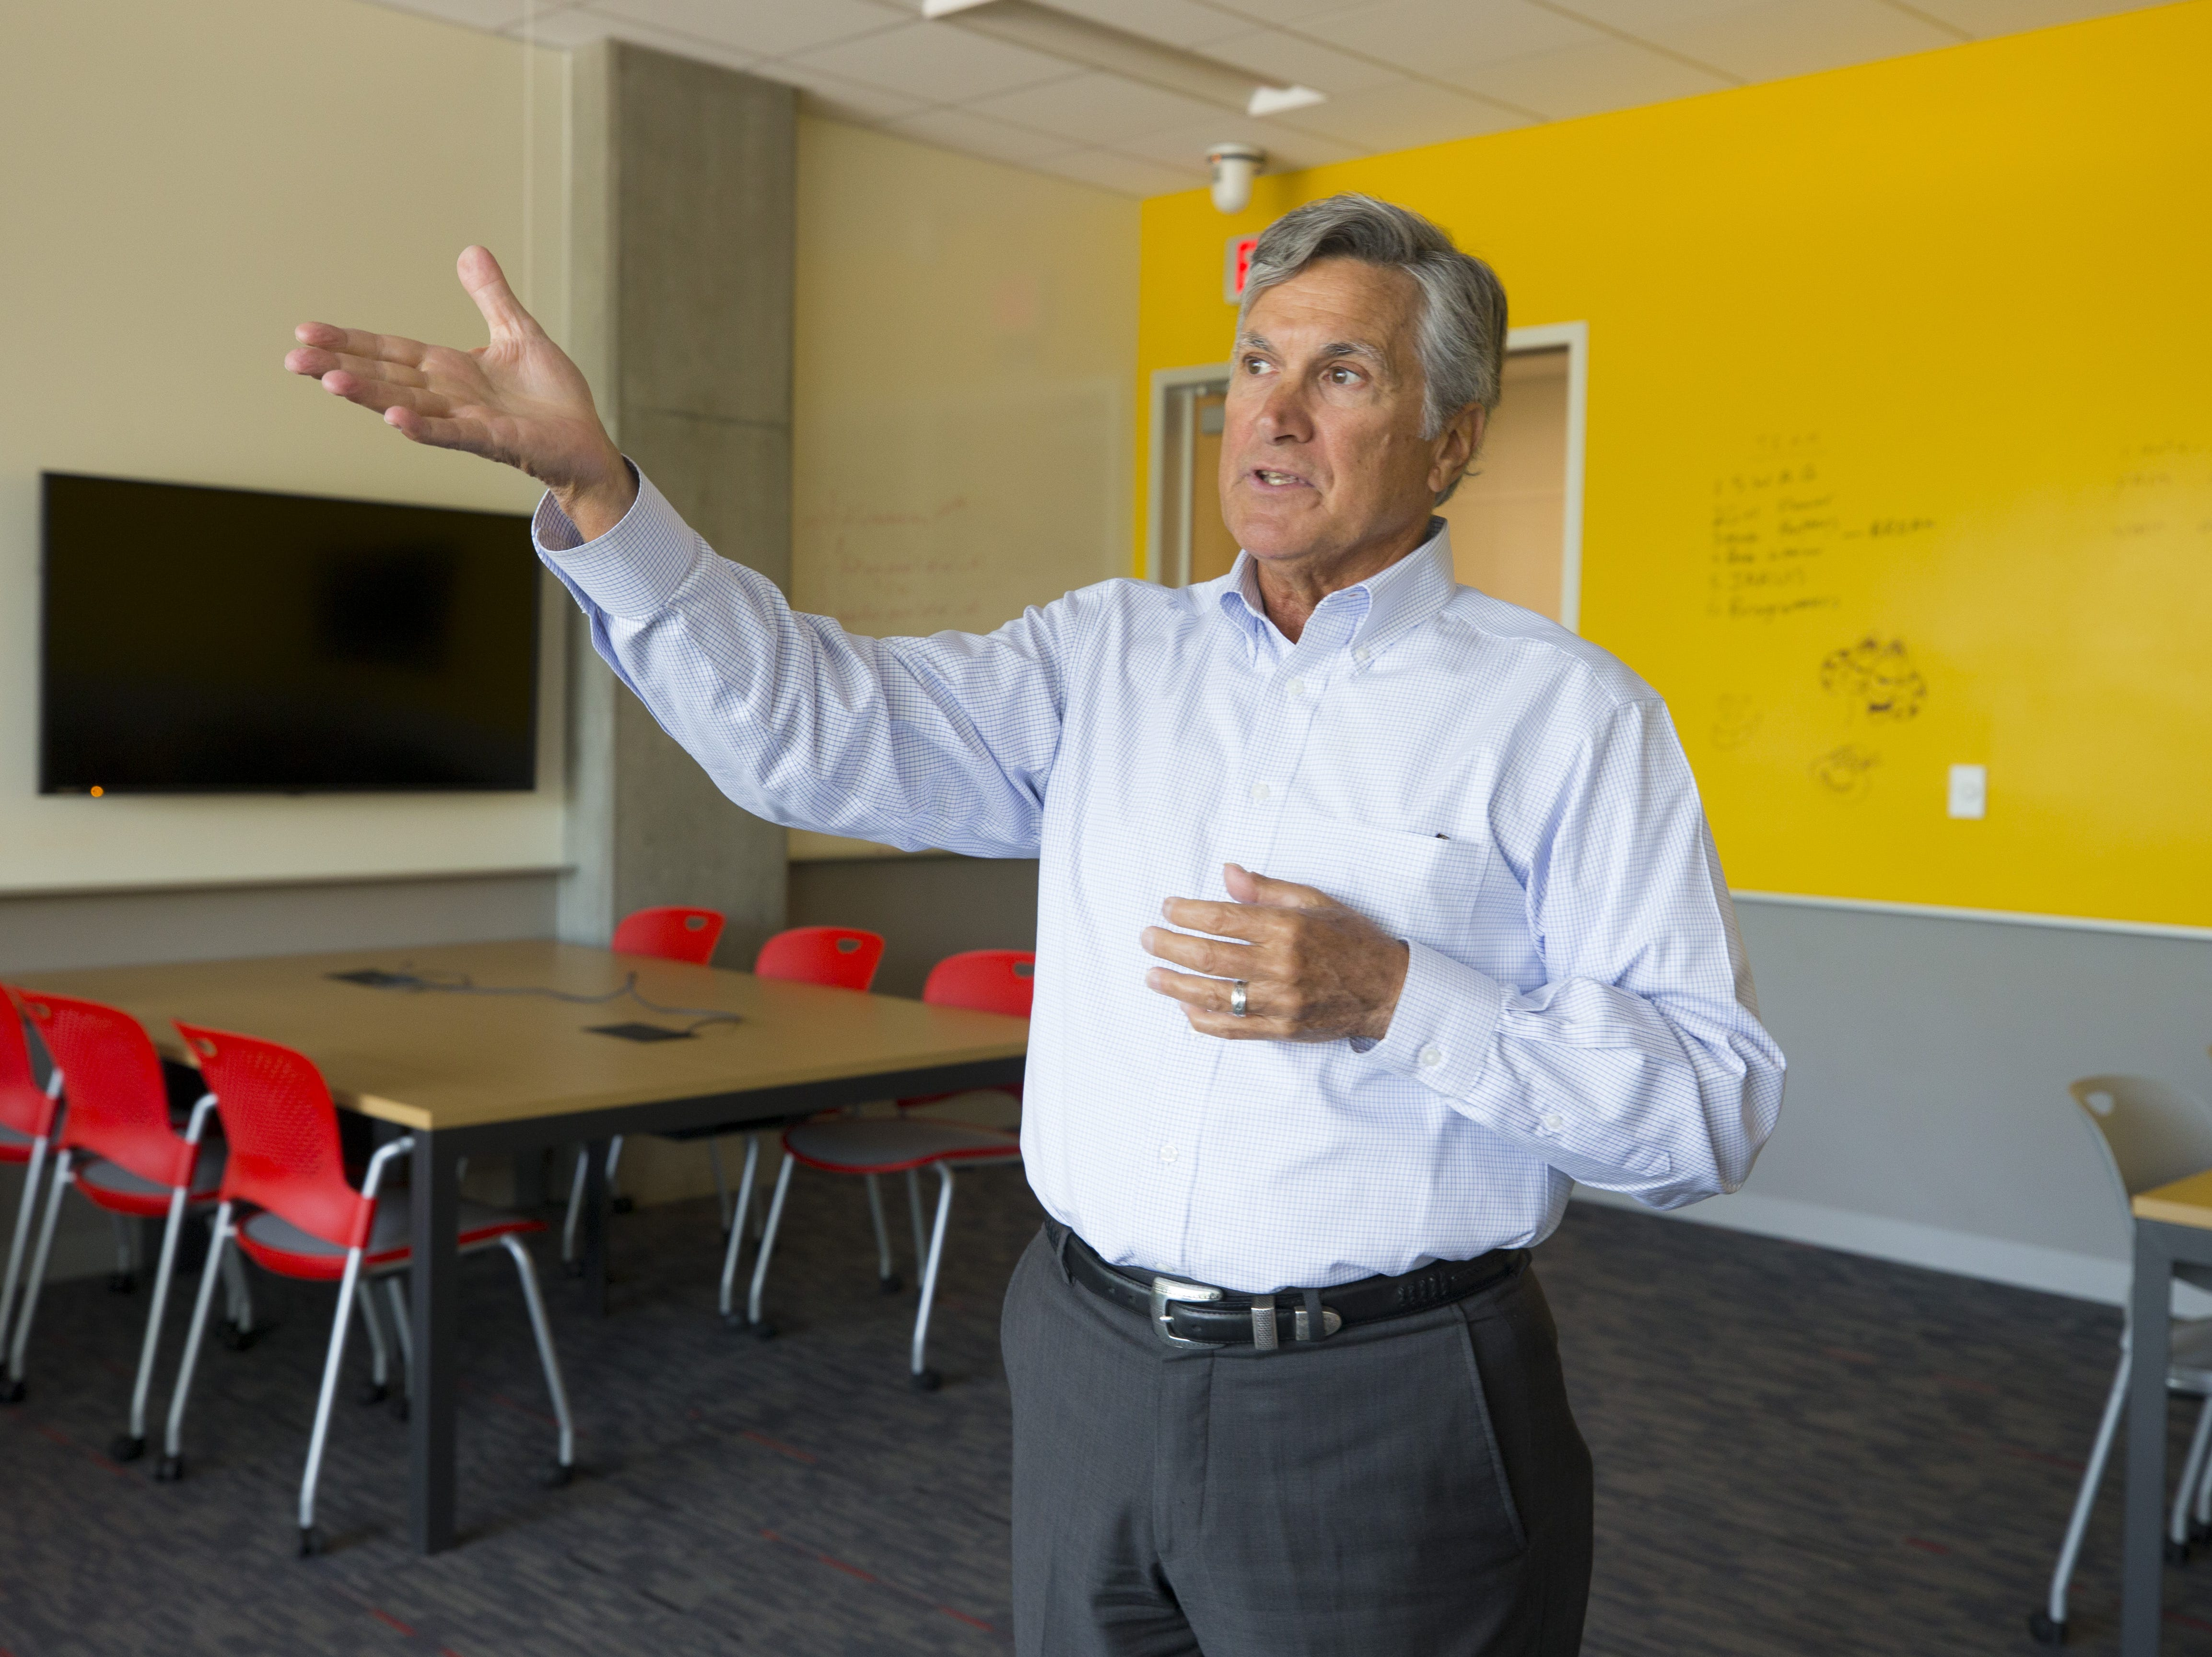 Jeff Ehrlich, executive director of Park University Gilbert campus shows off a classroom in the Gilbert University Building.